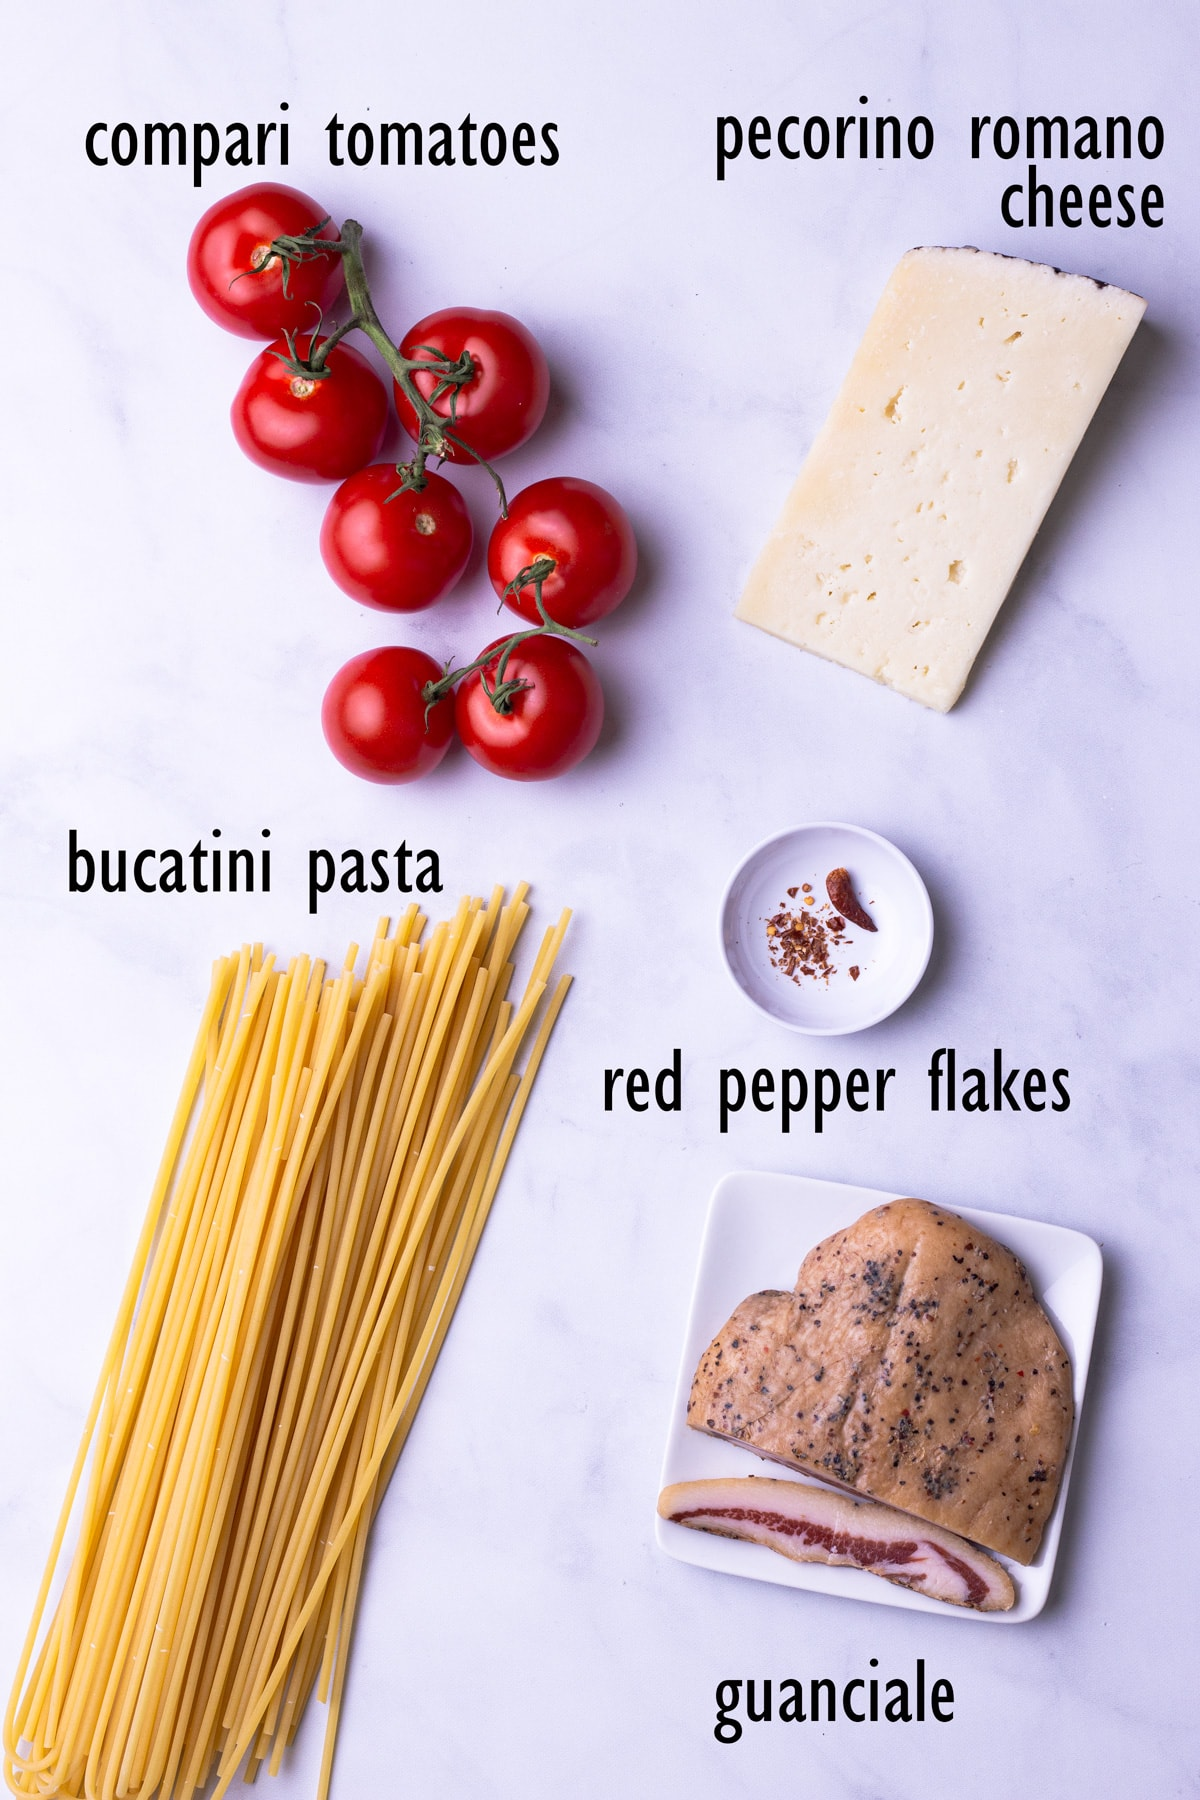 Overhead view of pasta ingredients including bucatini, tomatoes, pecorino cheese, red pepper and guanciale.